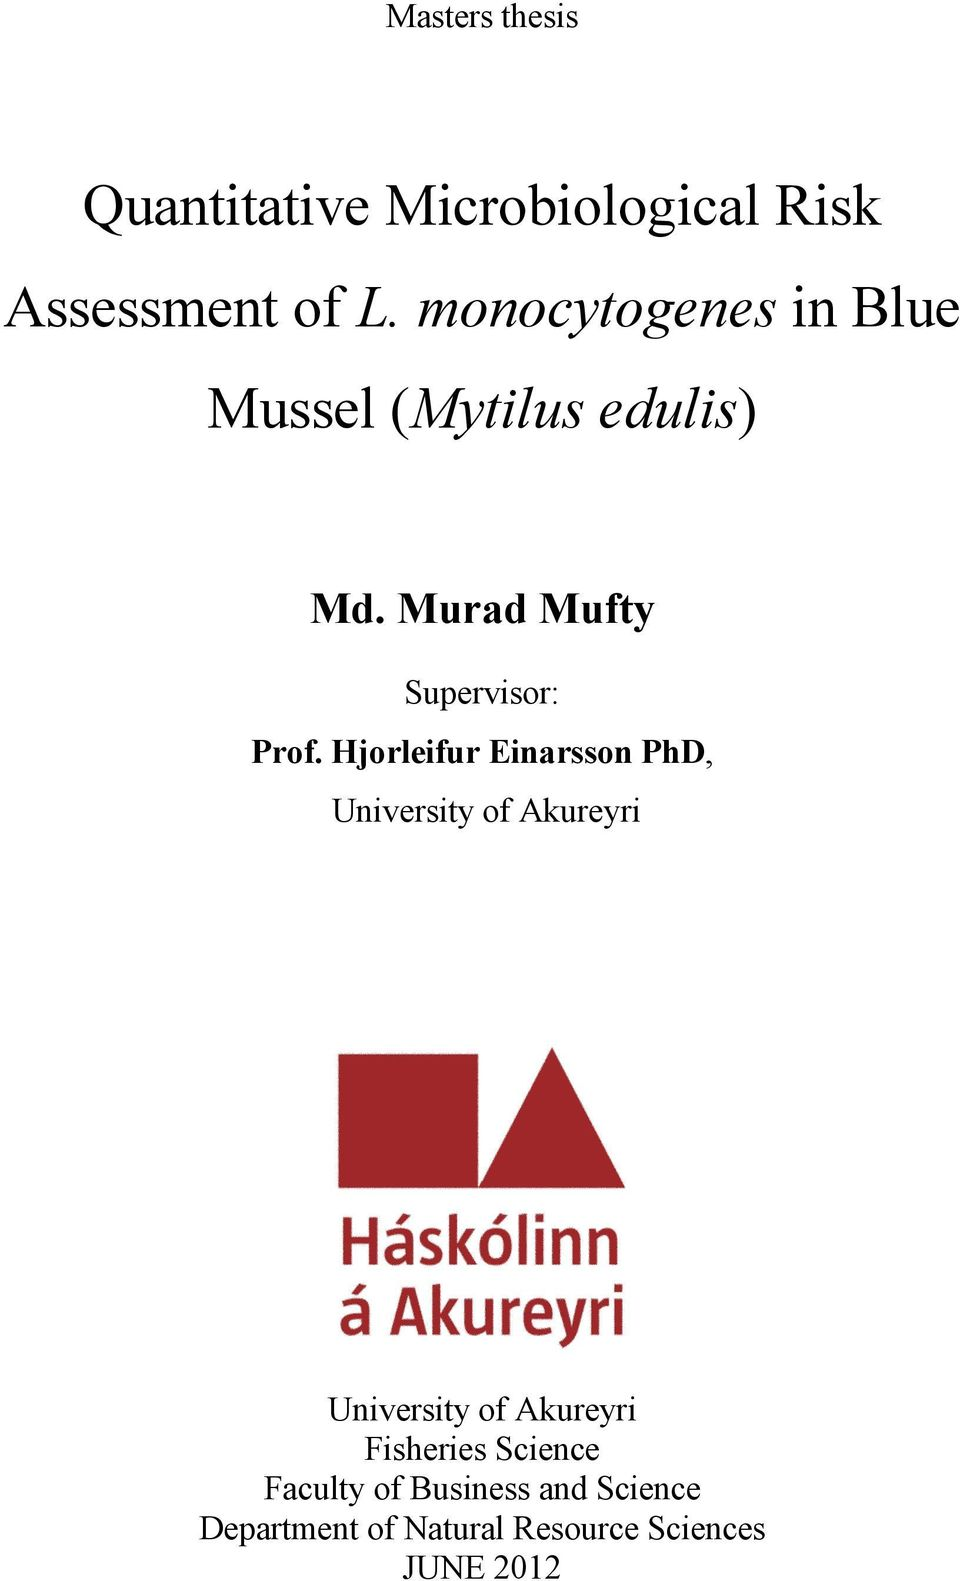 Aarhus university master thesis on risk